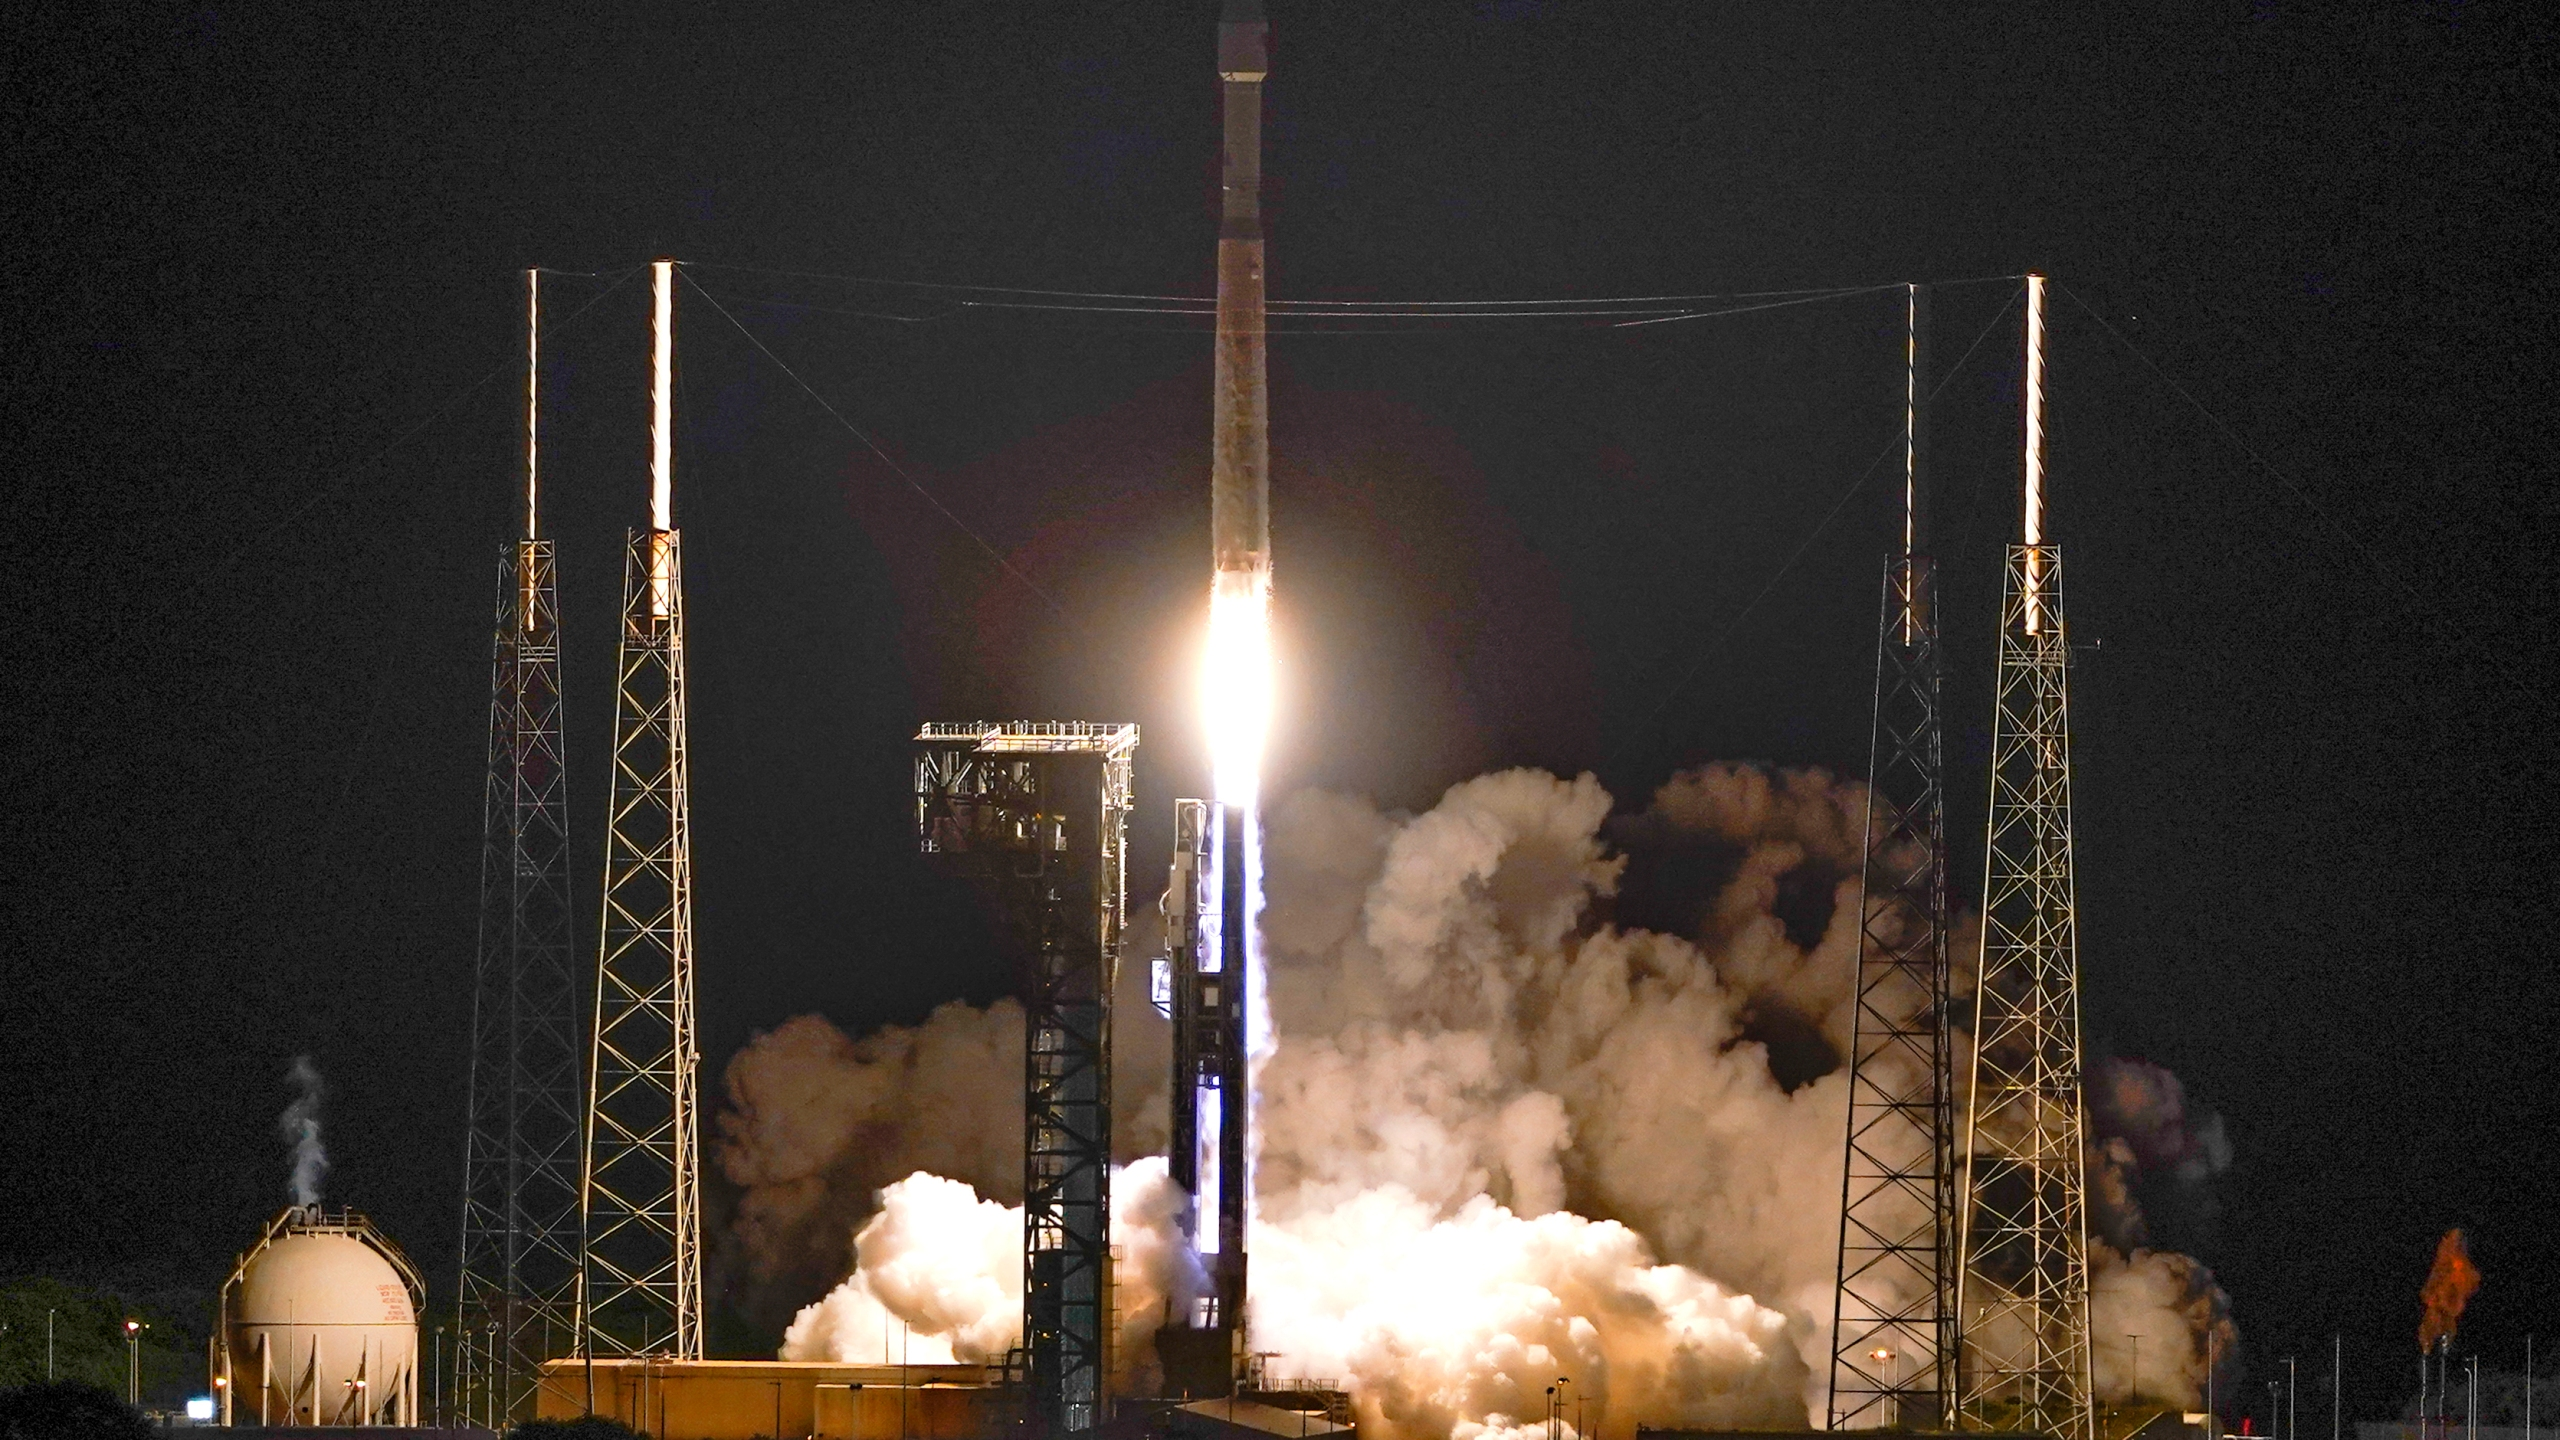 A United Launch Alliance Atlas V rocket carrying the LUCY spacecraft lifts off from Launch Complex 41 at the Cape Canaveral Space Force Station, Saturday, Oct. 16, 2021, in Cape Canaveral, Fla. (AP Photo/(John Raoux)